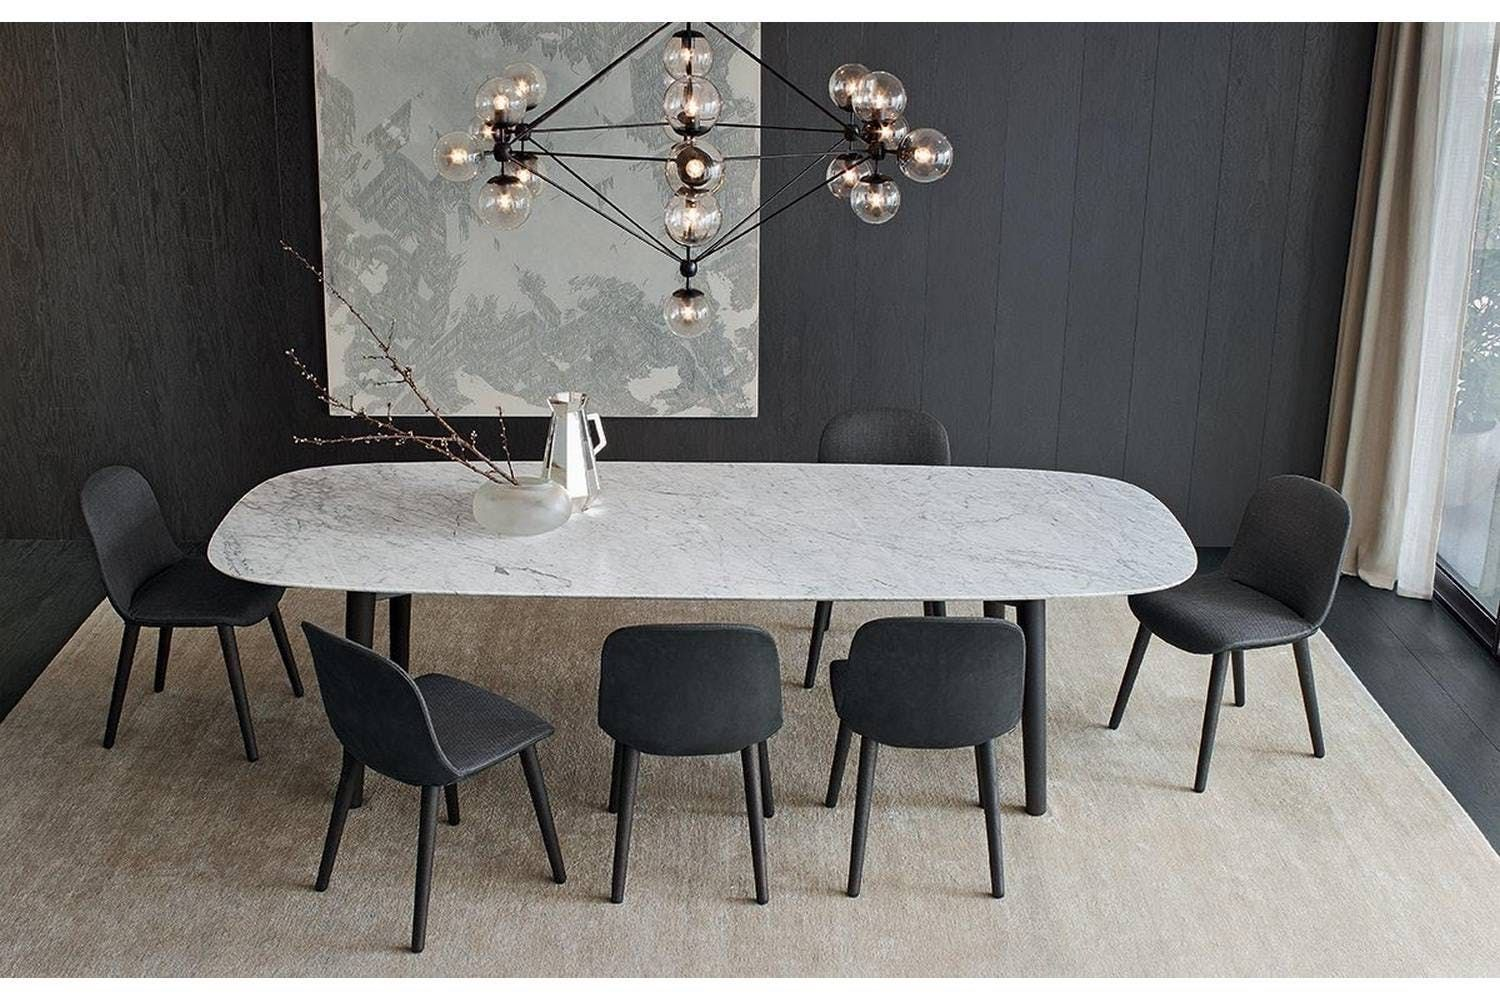 Interior Design Ideas For A Glamorous Dining Room Dining Table Marble Dining Room Design Modern Modern Dining Room